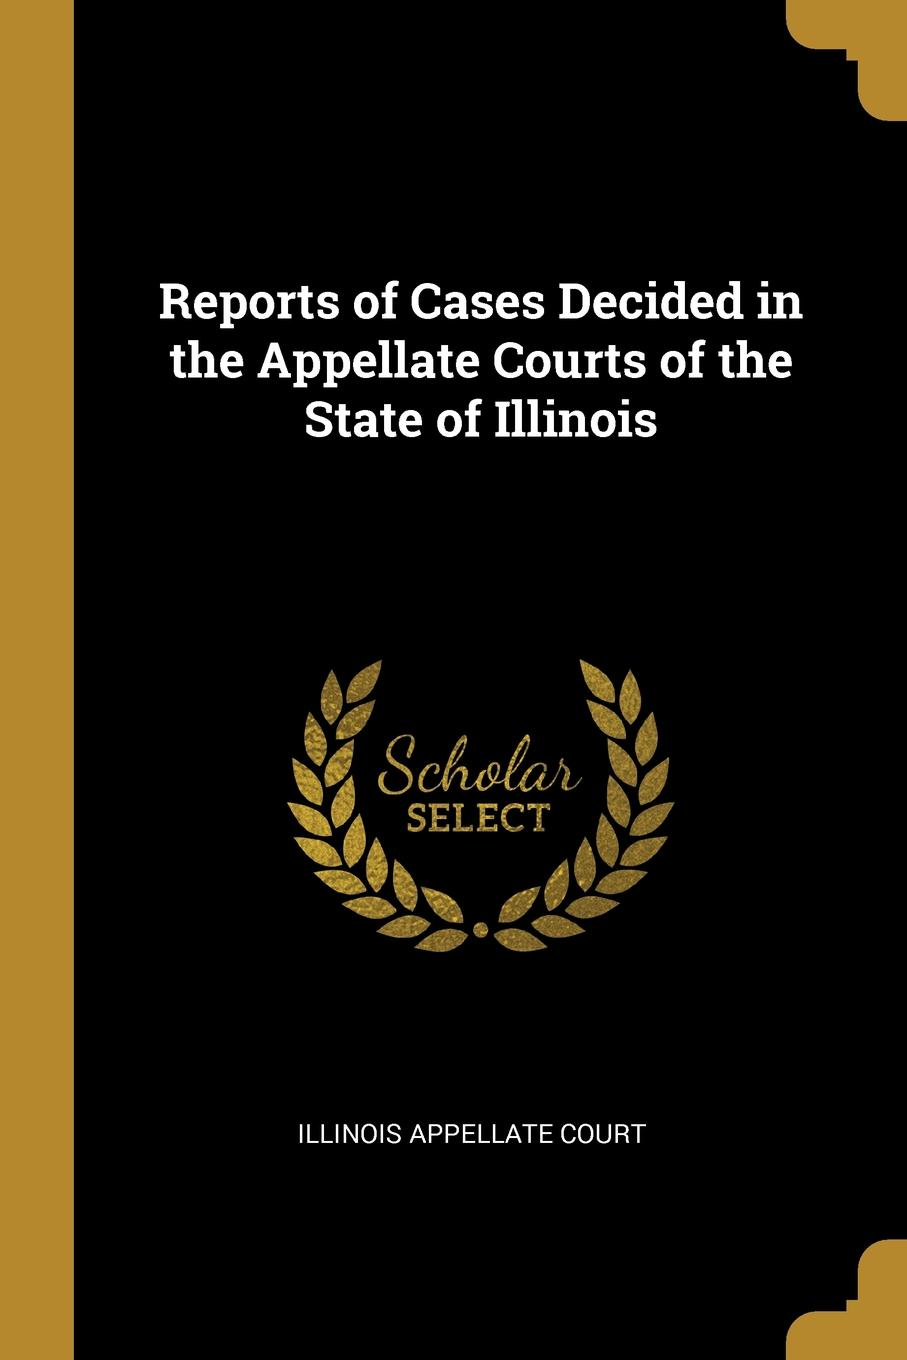 Illinois Appellate Court Reports of Cases Decided in the Appellate Courts of the State of Illinois